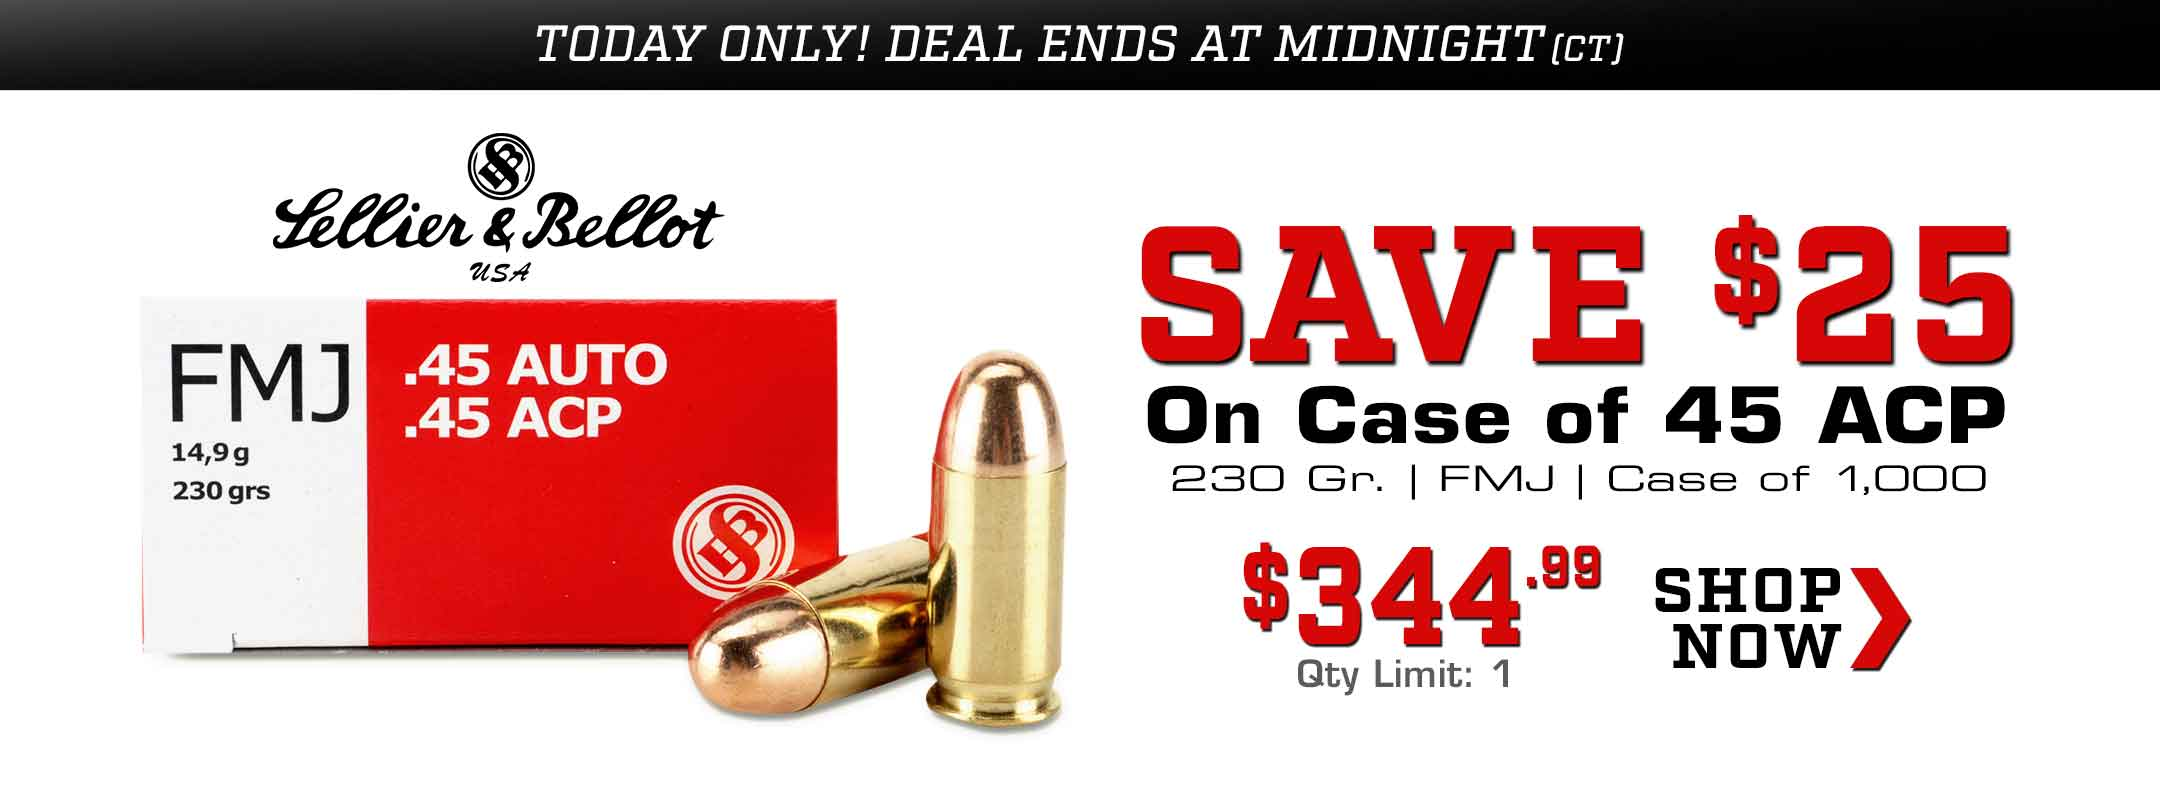 Save $25 on Case of Sellier & Bellot 45 ACP